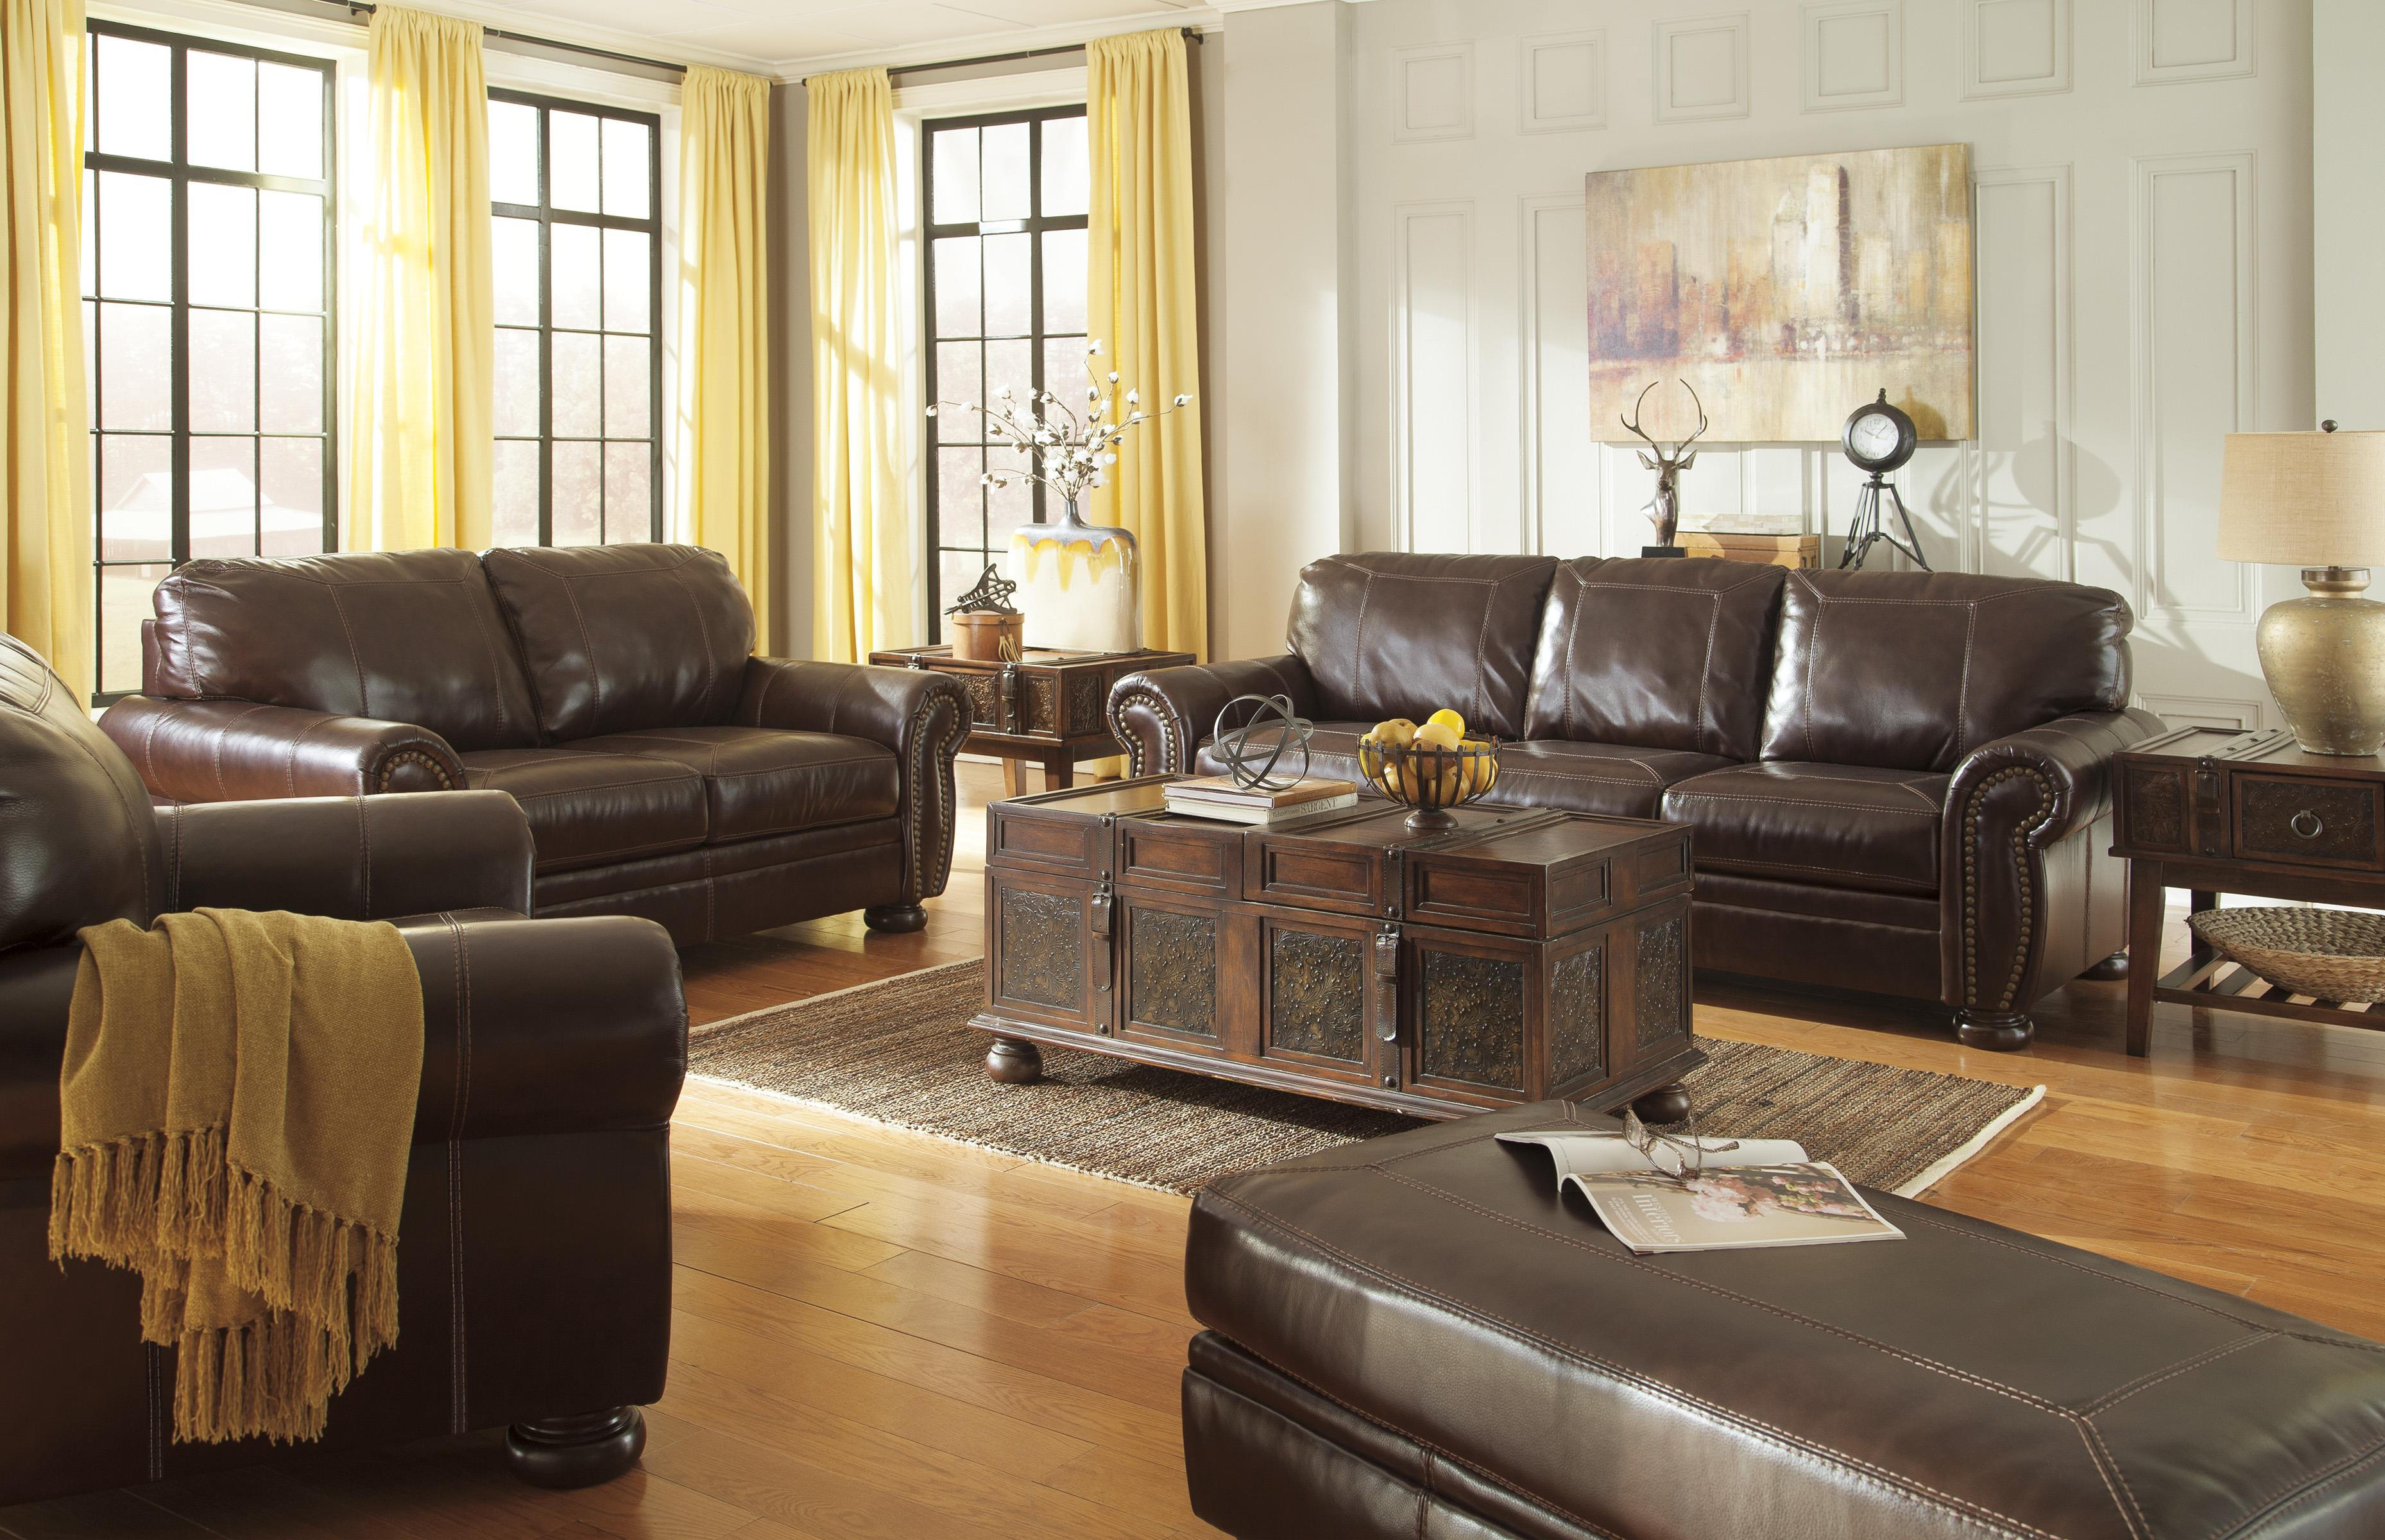 a leather furniture and sofas catosfera from sofa red net ottoman brown steal oversized odd with imagination sectional